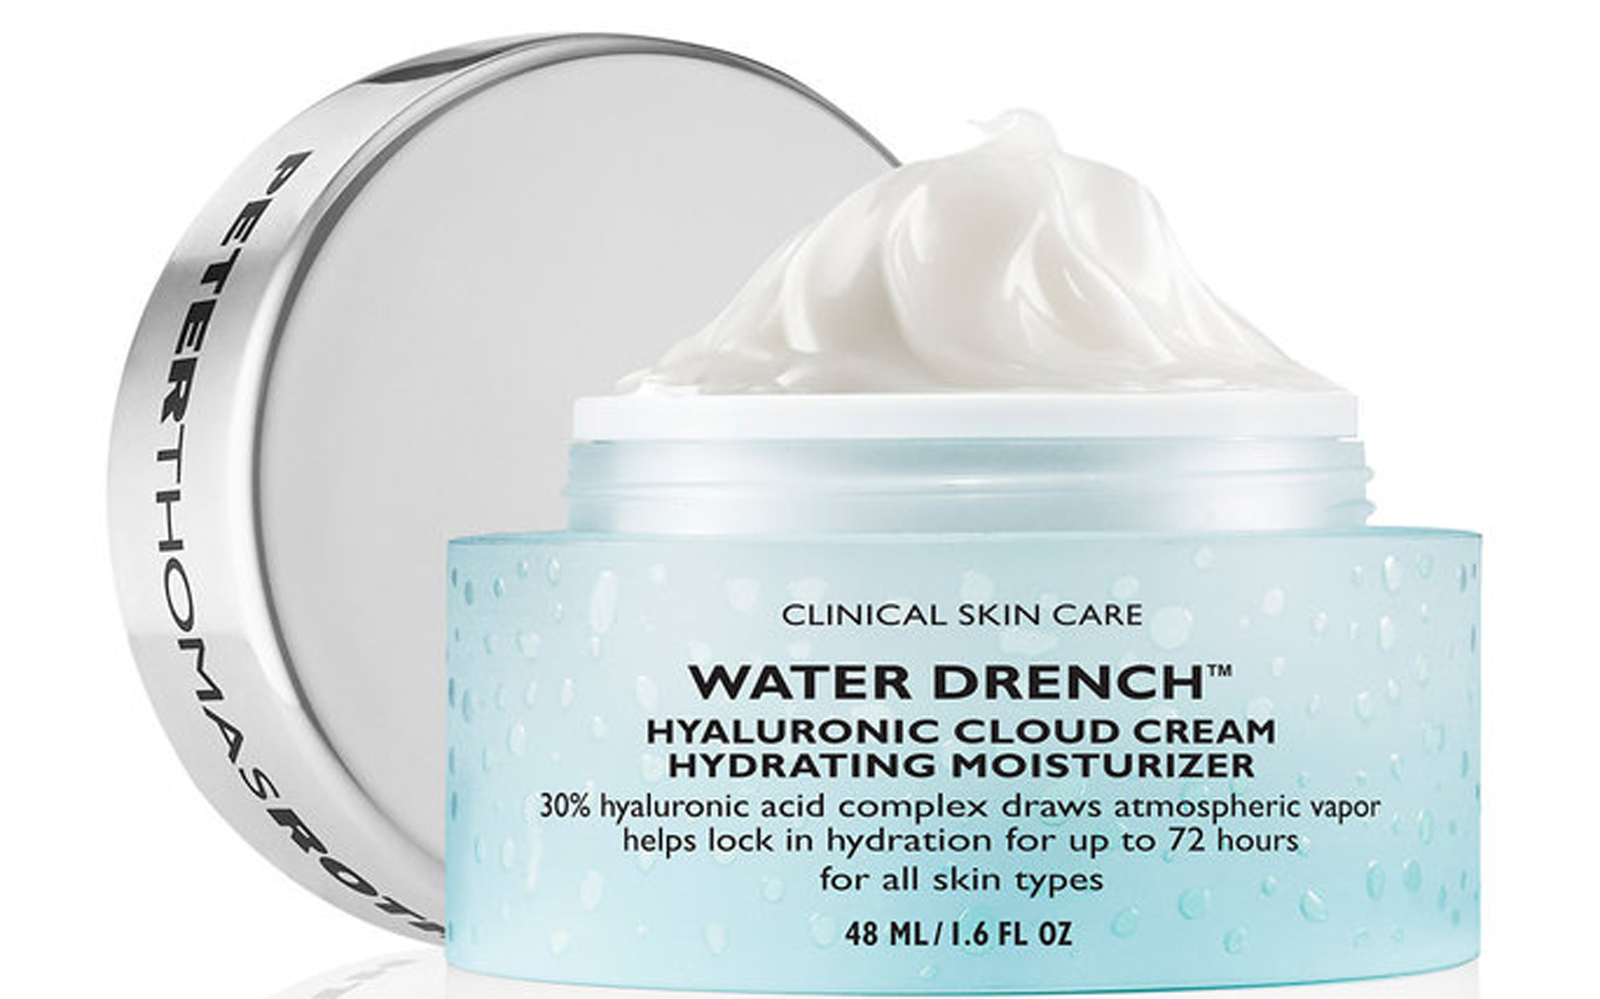 Sephora Can't Keep This Face Cream in Stock